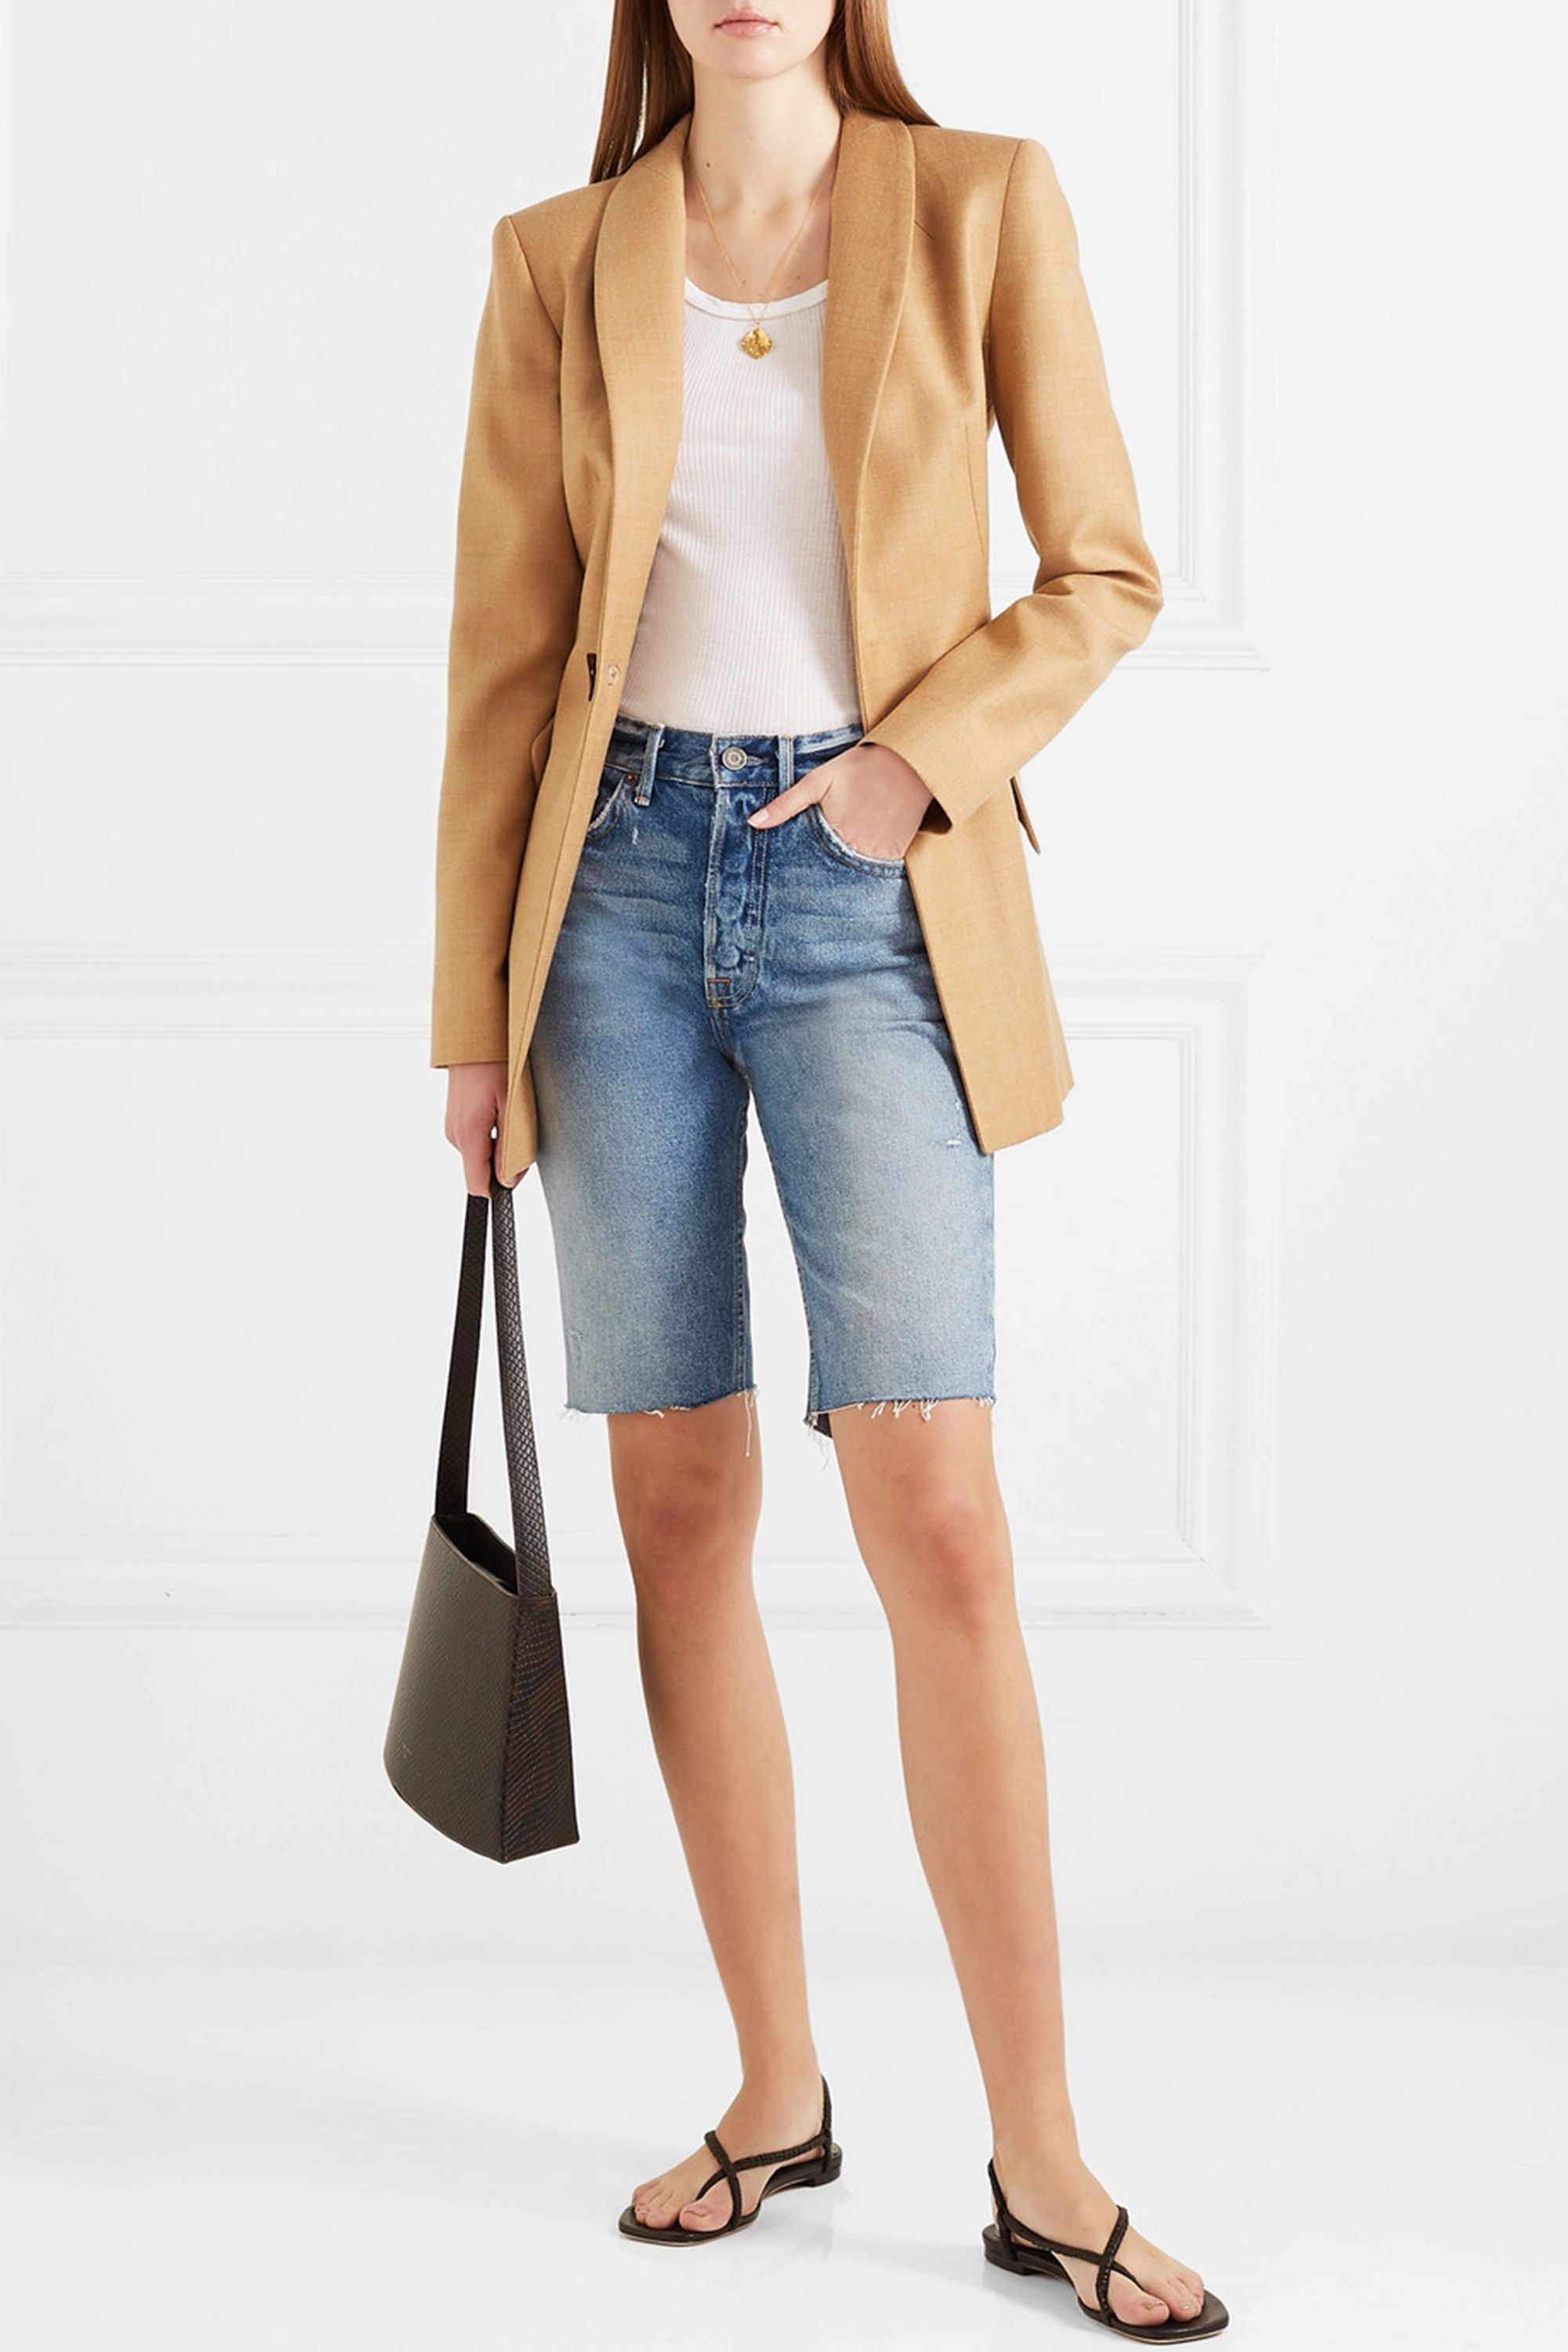 Beverly Frayed Denim Shorts GRLFRND net-a-porter.com $180.00 SHOP NOW This season swap out your daisy dukes for Bermuda shorts. These knee-length denim shorts work well with almost everything, but they look surprisingly chic with a camel-colored blazer and a ribbed tank.